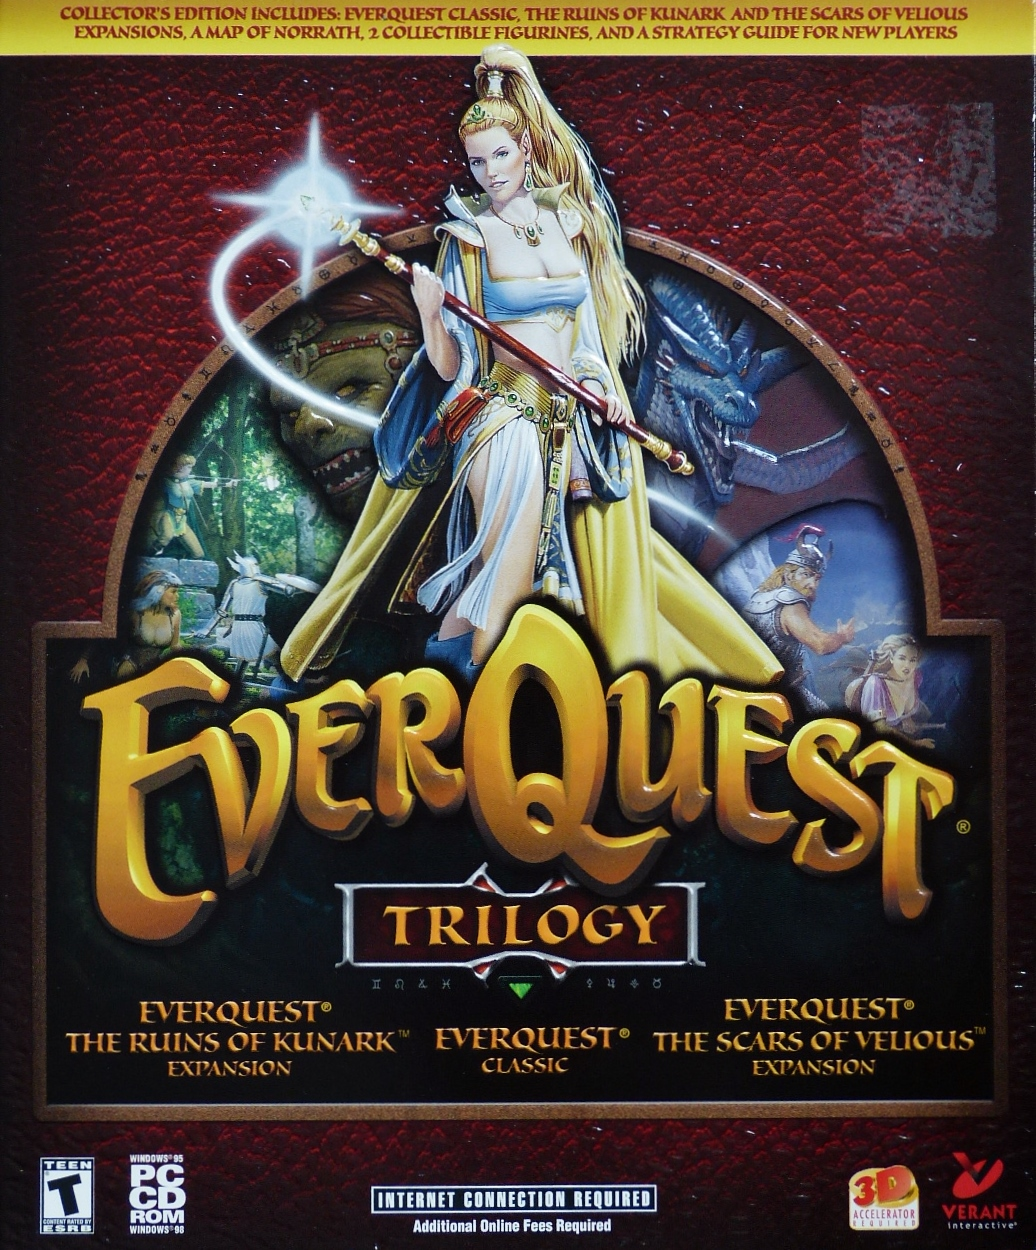 Computer Game Museum Display Case - EverQuest Trilogy